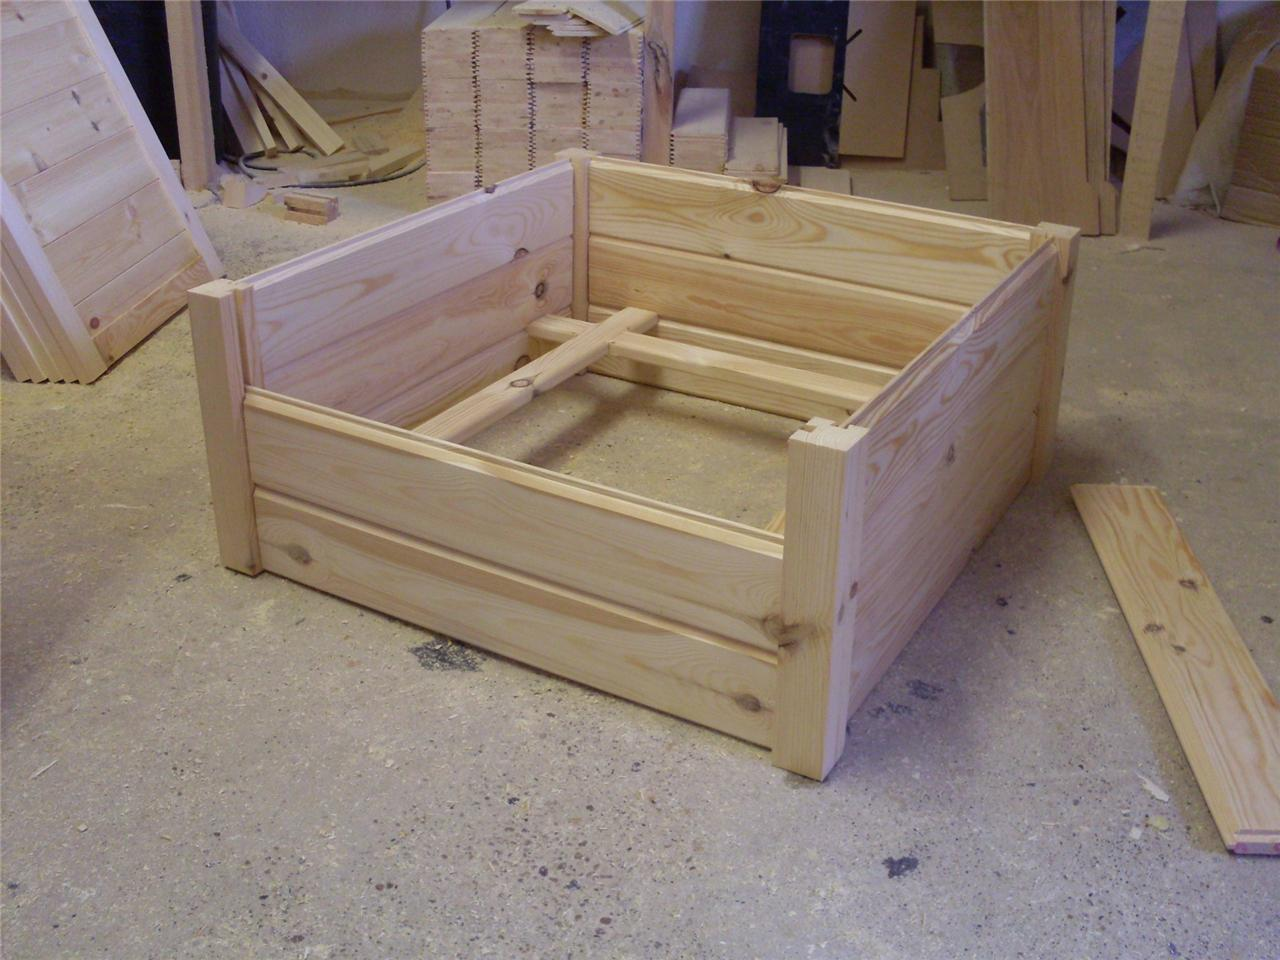 Wooden dog puppy whelping box bed very high quality 3 for Wooden box bed image